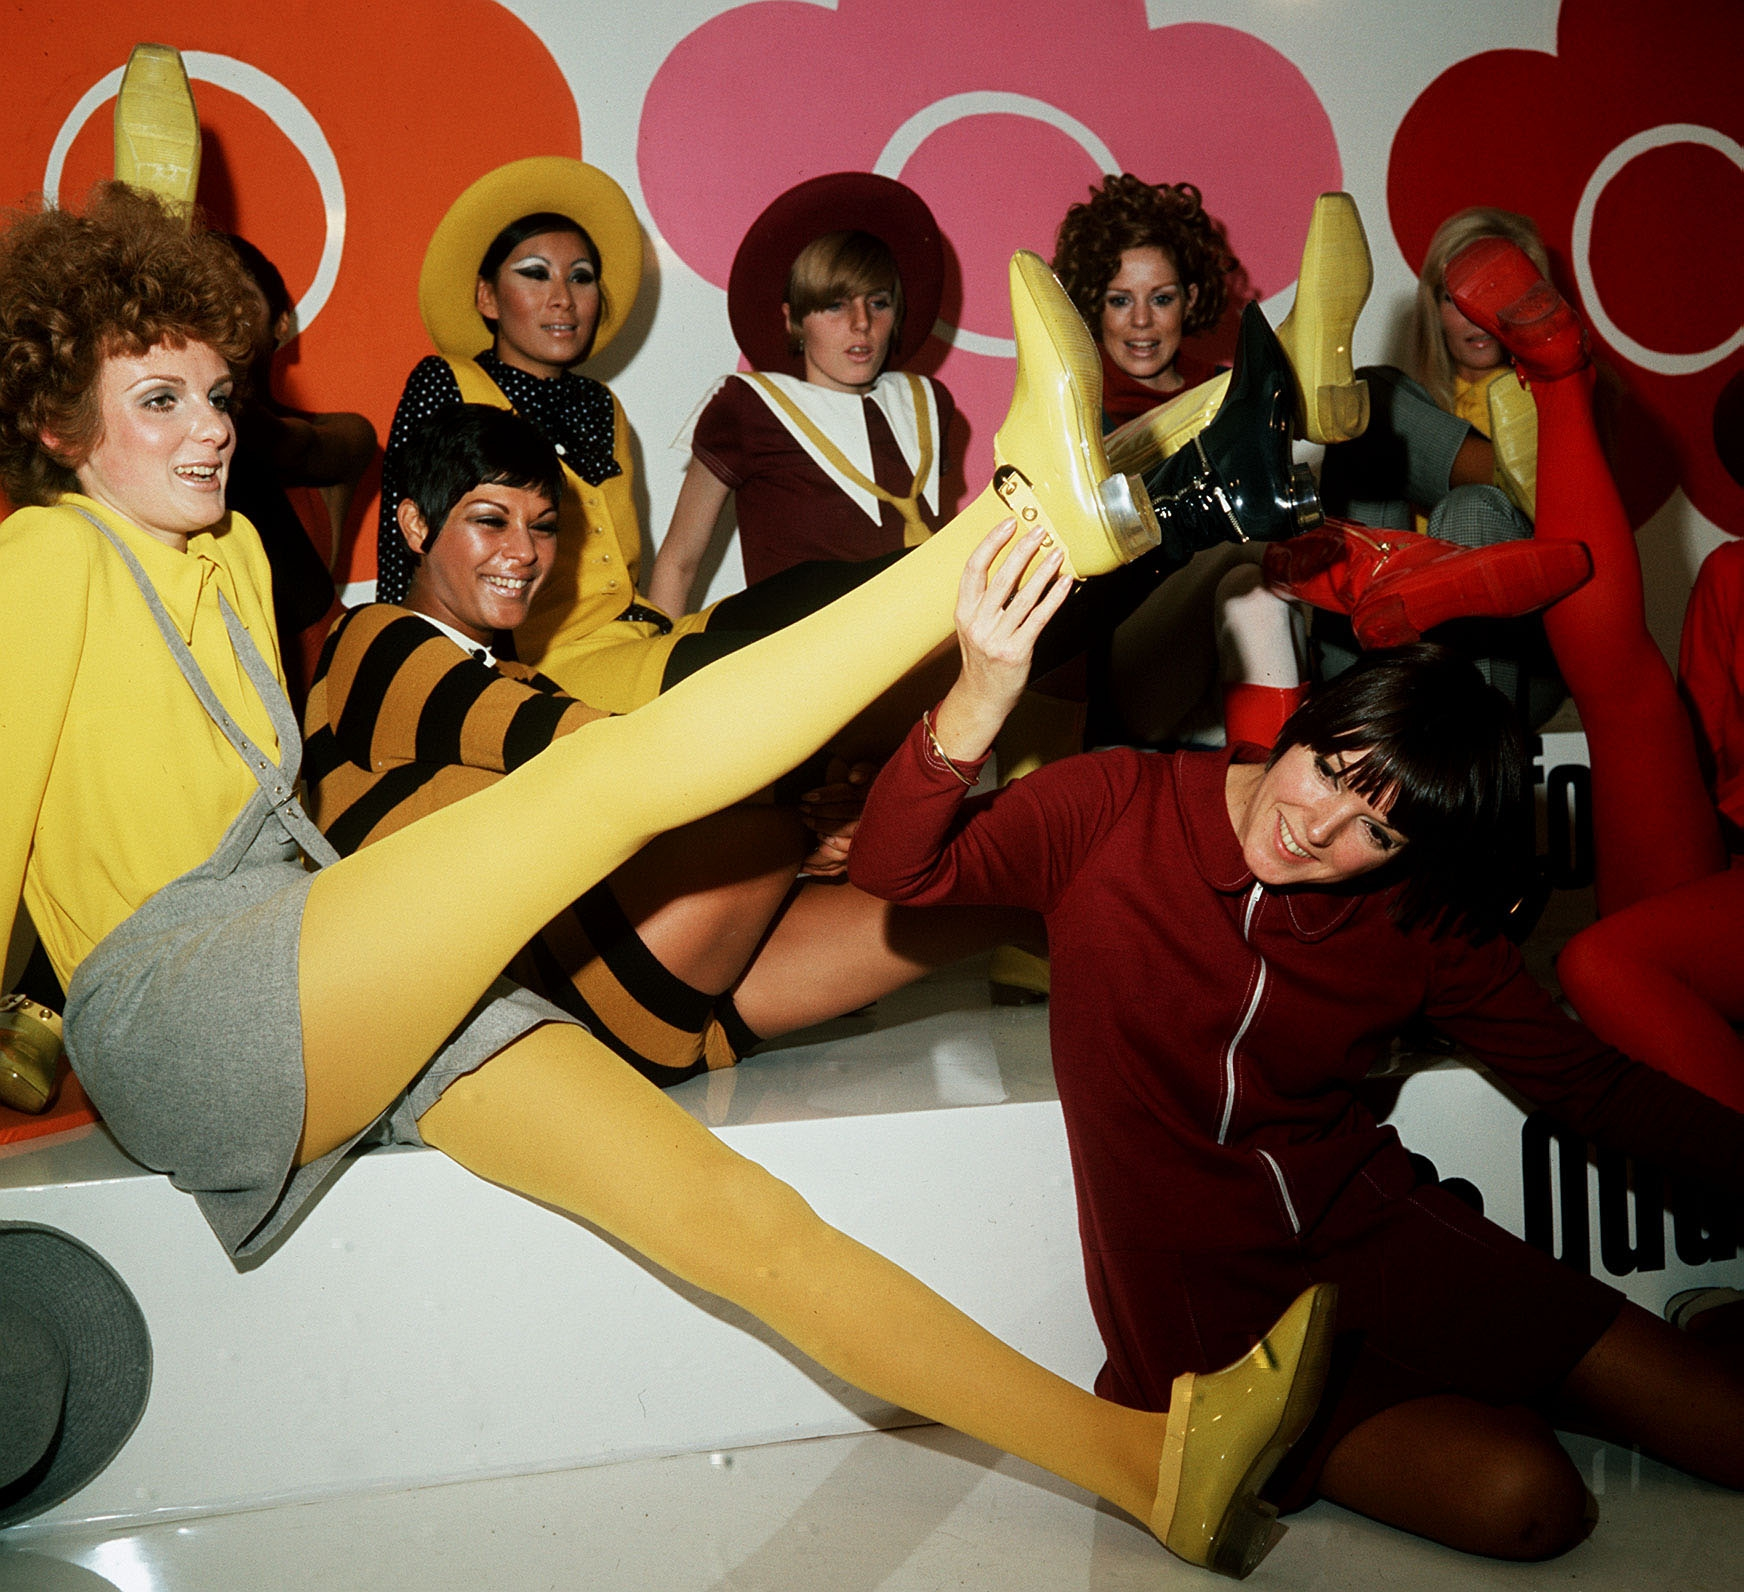 Mary Quant, foreground, with models wearing her creations